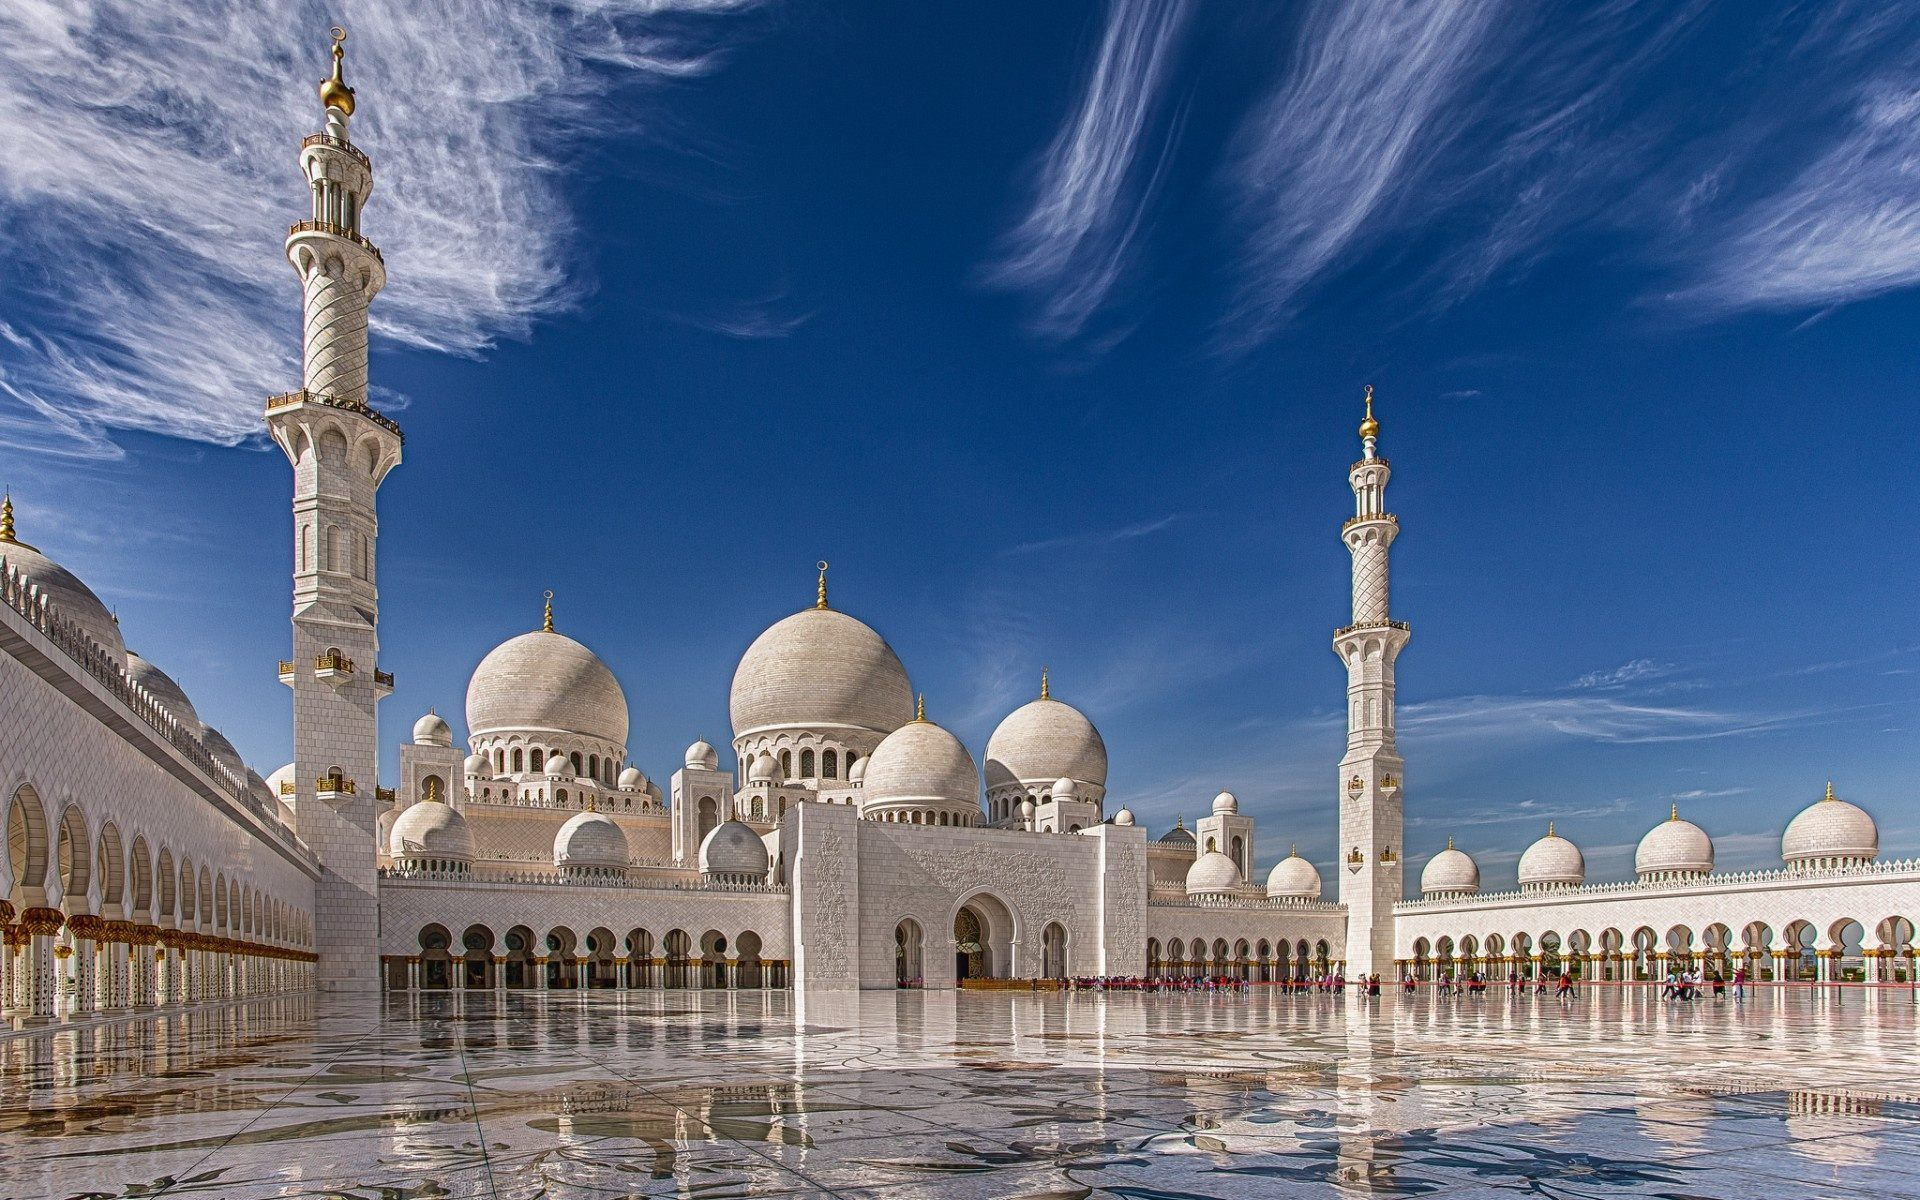 Full HD Sheikh Zayed Grand Mosque Abu Dhabi Desktop Wallpaper Download Free  For Widescreen, Mobile